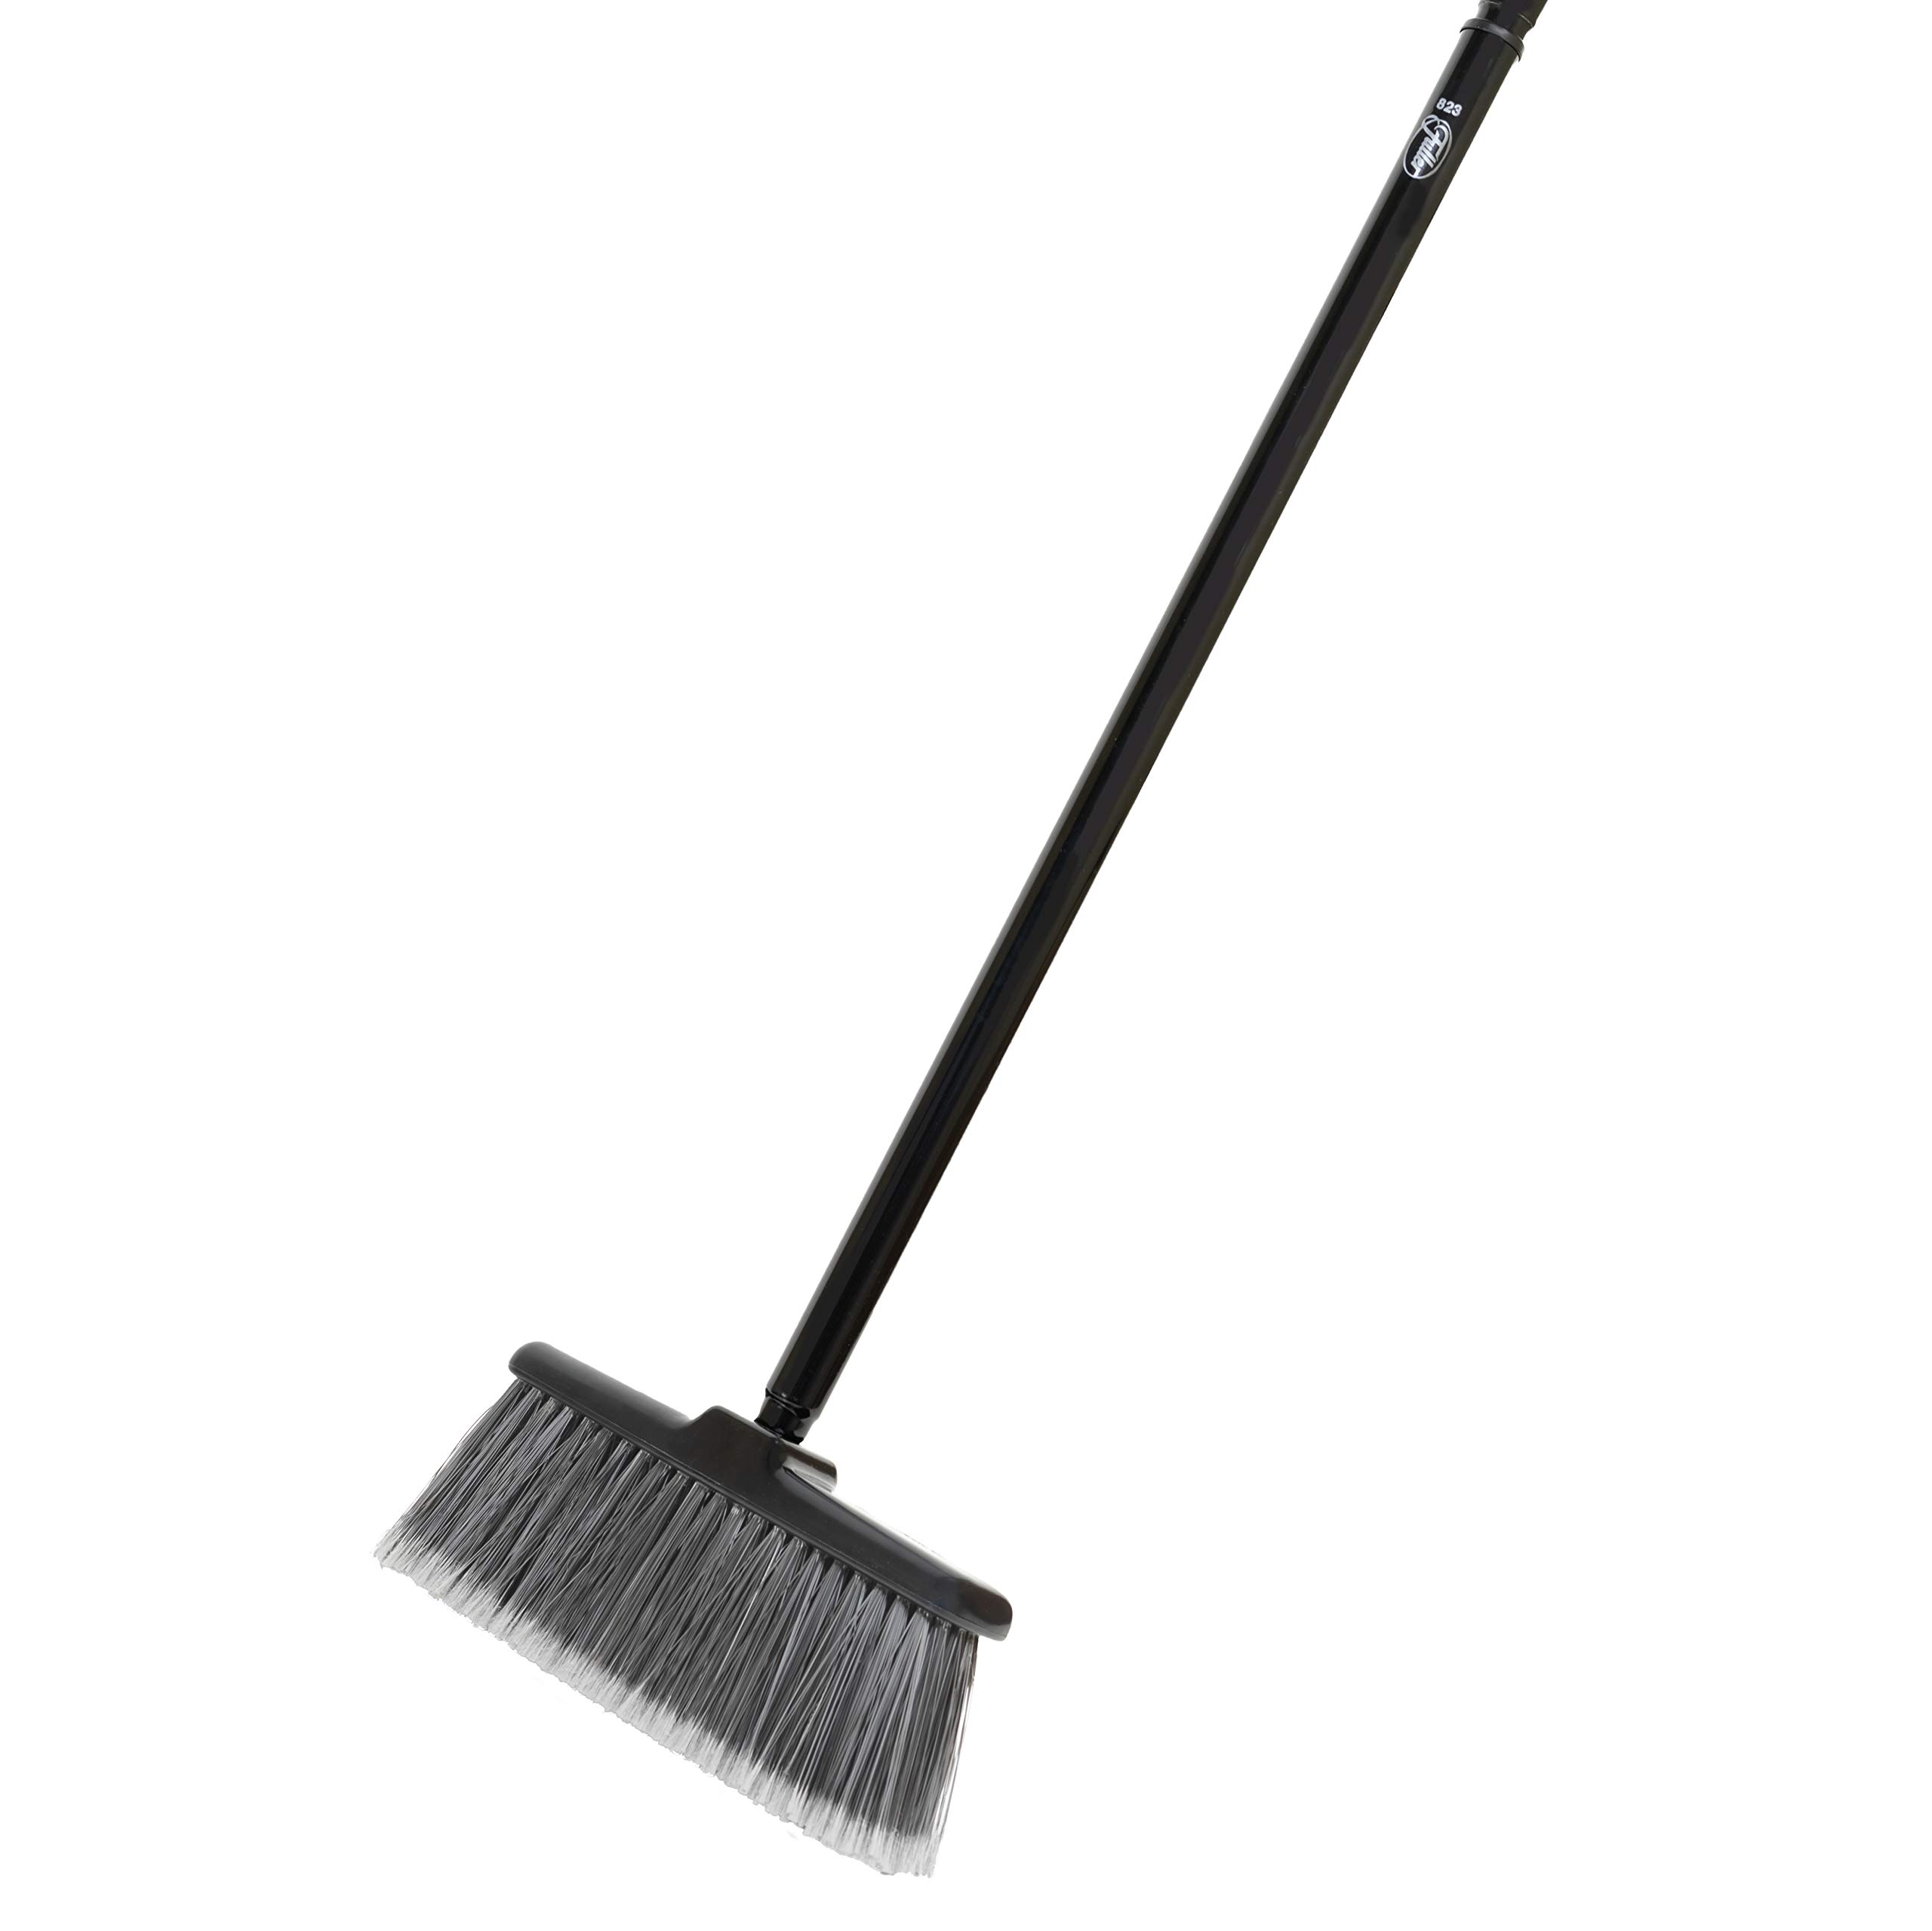 Fuller Brush Kitchen Broom - Heavy Duty Floor Sweeper with Steel Handle & Fine Long Bristles - Dust Sweeping for Home/Commercial Kitchen & Warehouse Floors by Fuller Brush